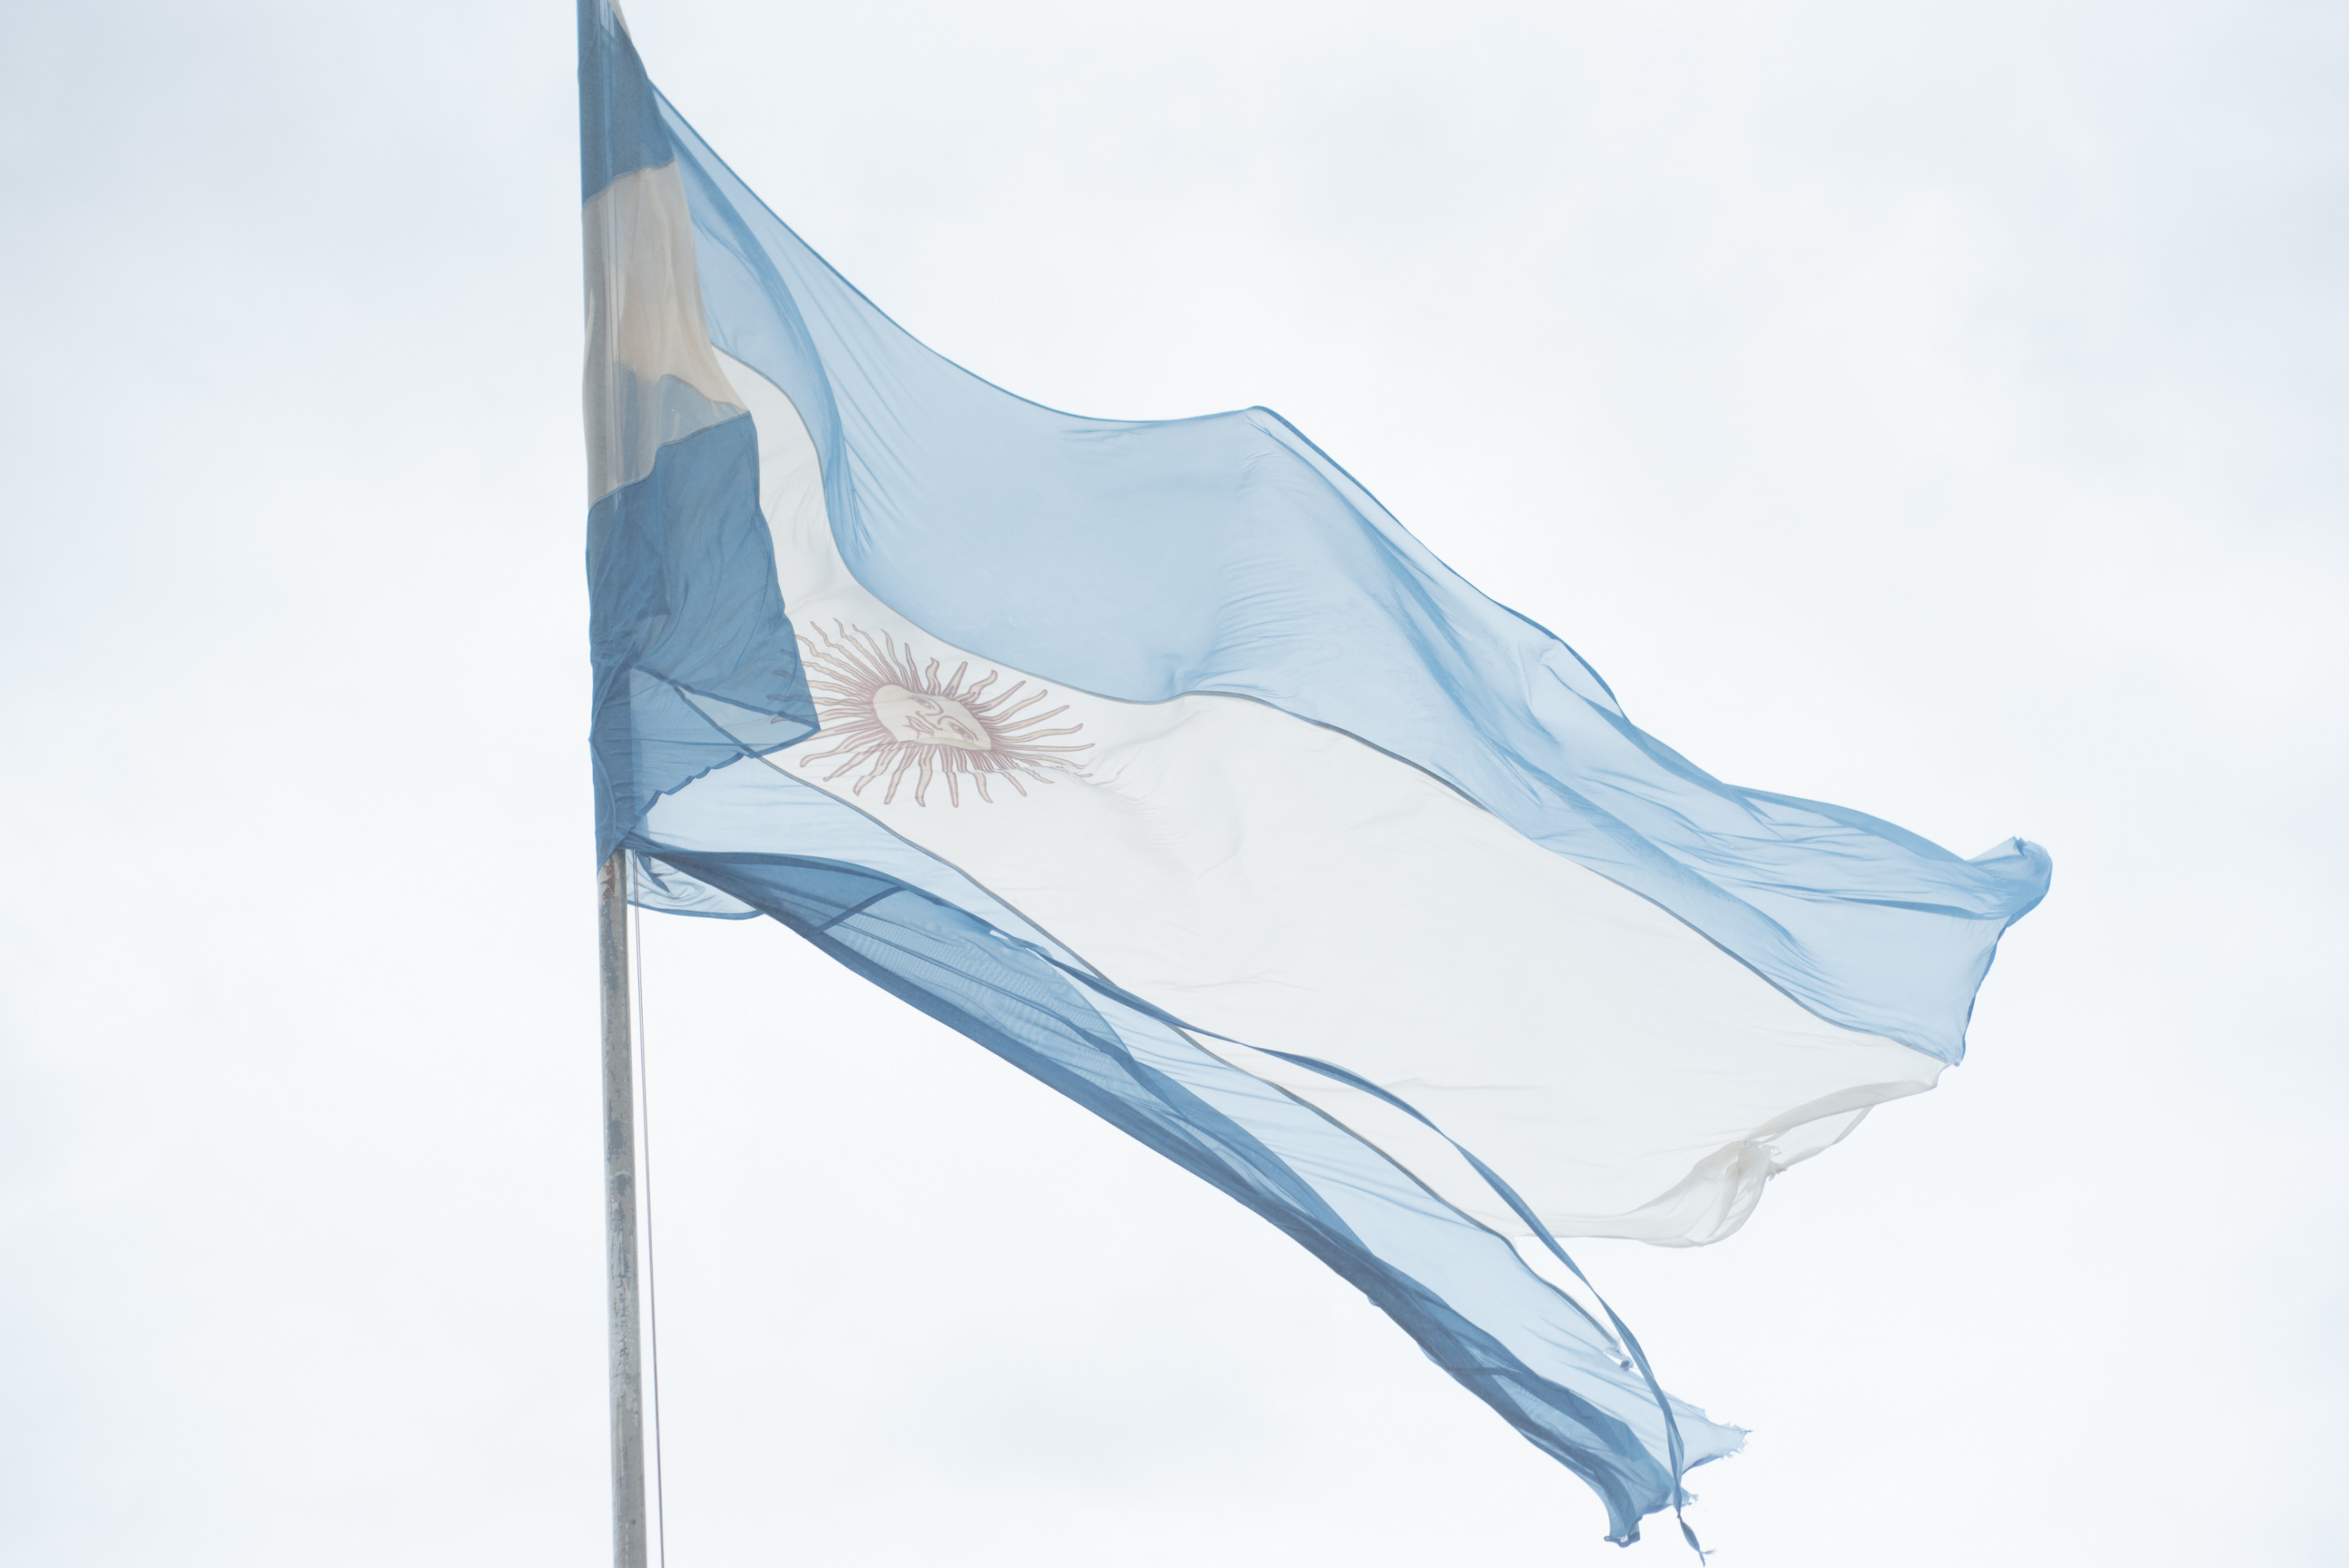 The Argentine flag waves in the misty air near the Devil's Throat on the Argentine side.